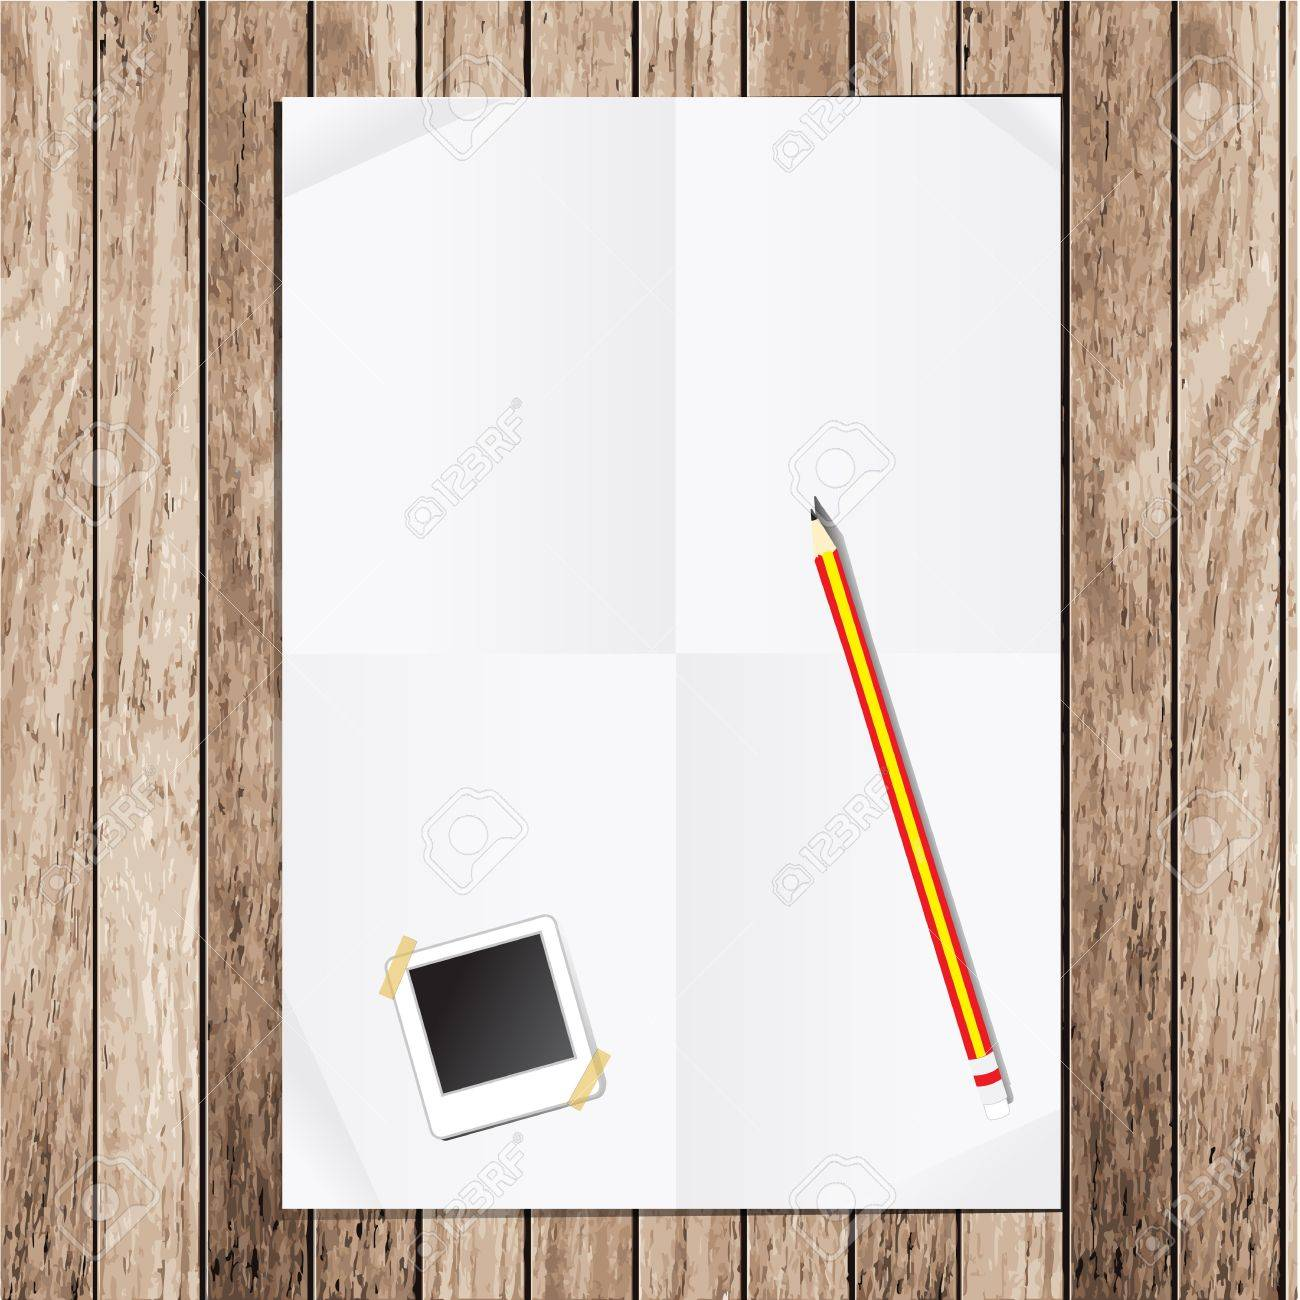 Empty white Crumpled paper With Pencils and picture frames on wood table Stock Vector - 13214171